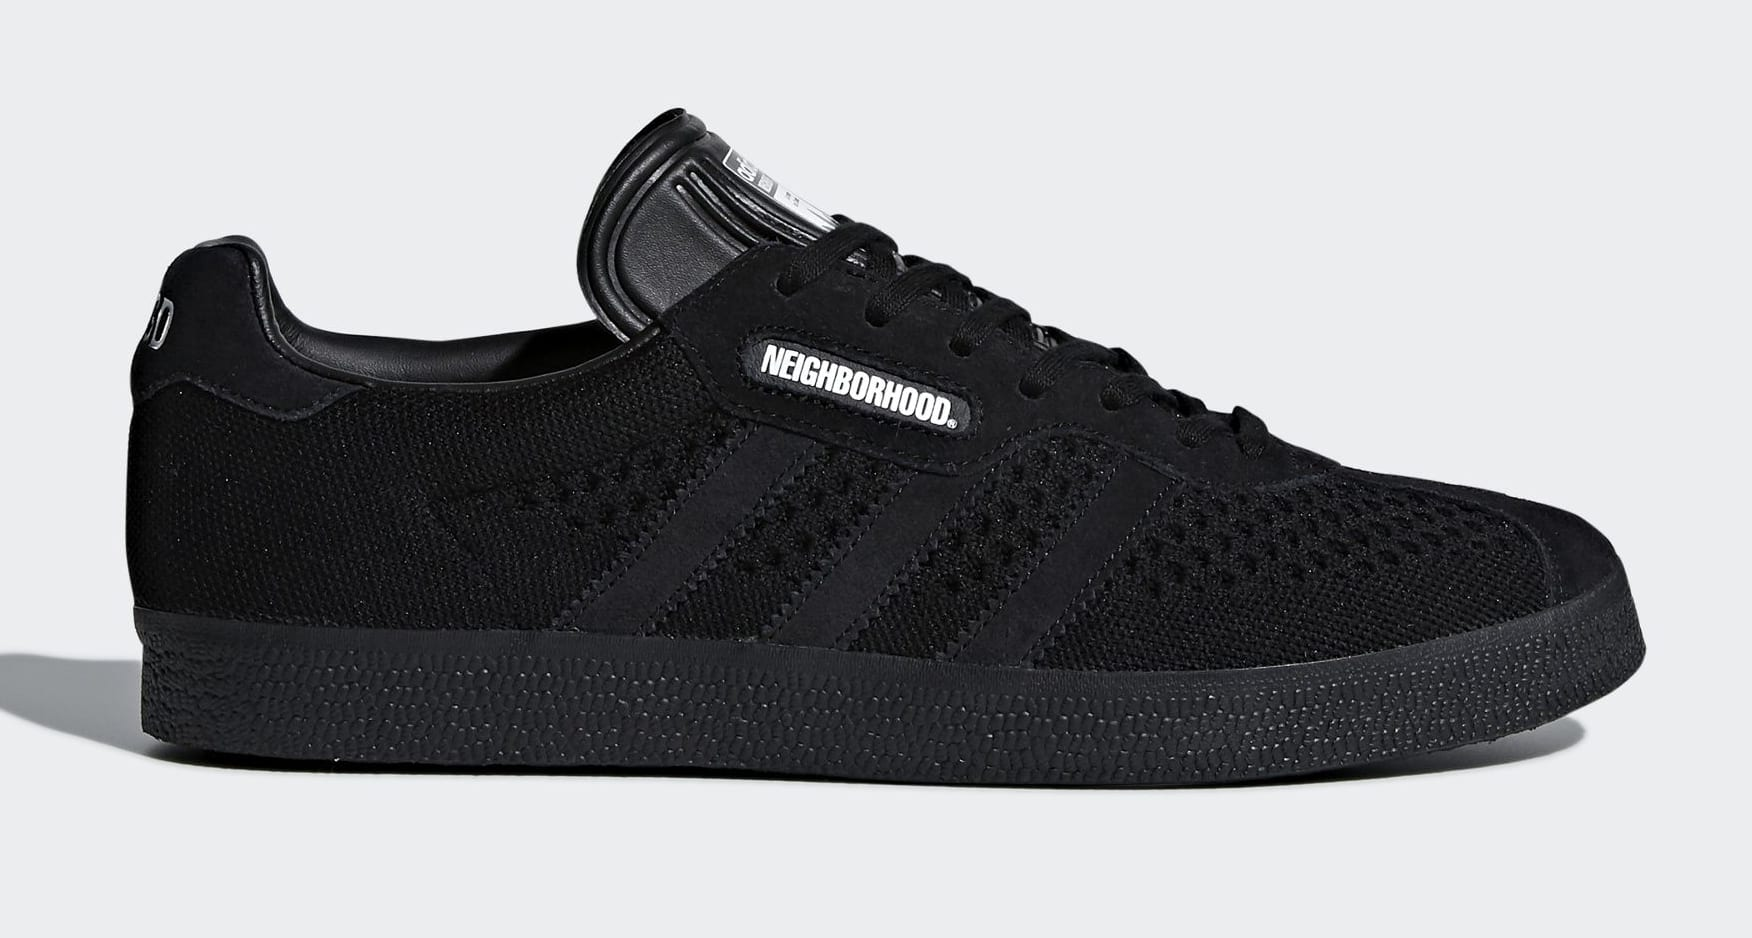 Neighborhood x Adidas Gazelle Super DA8836 (Lateral)